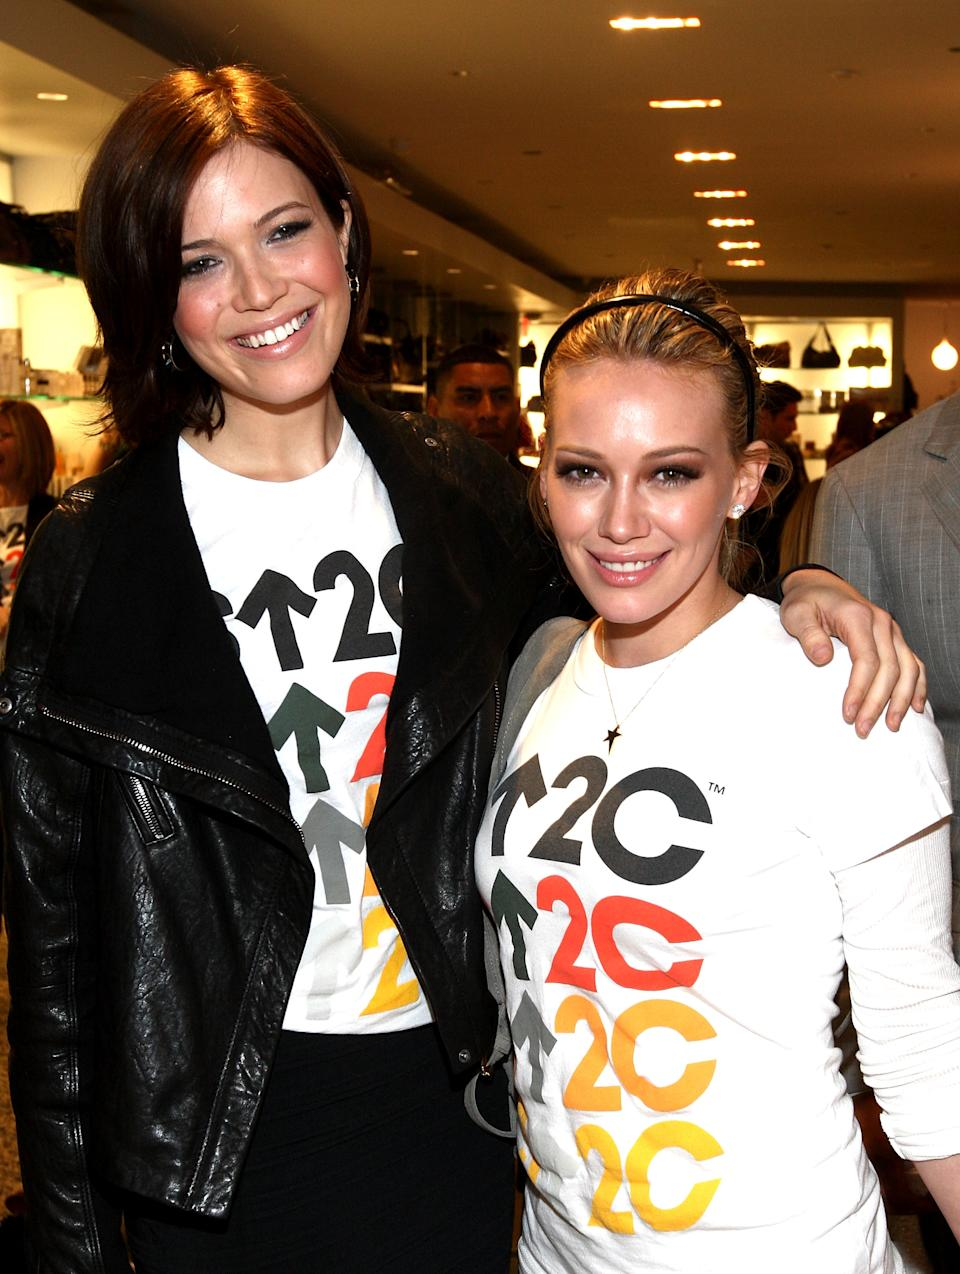 Mandy Moore and Hilary Duff (pictured in 2008) hosted a hangout for their newborn babies, August and Mae. (Photo: Alberto E. Rodriguez/Getty Images)